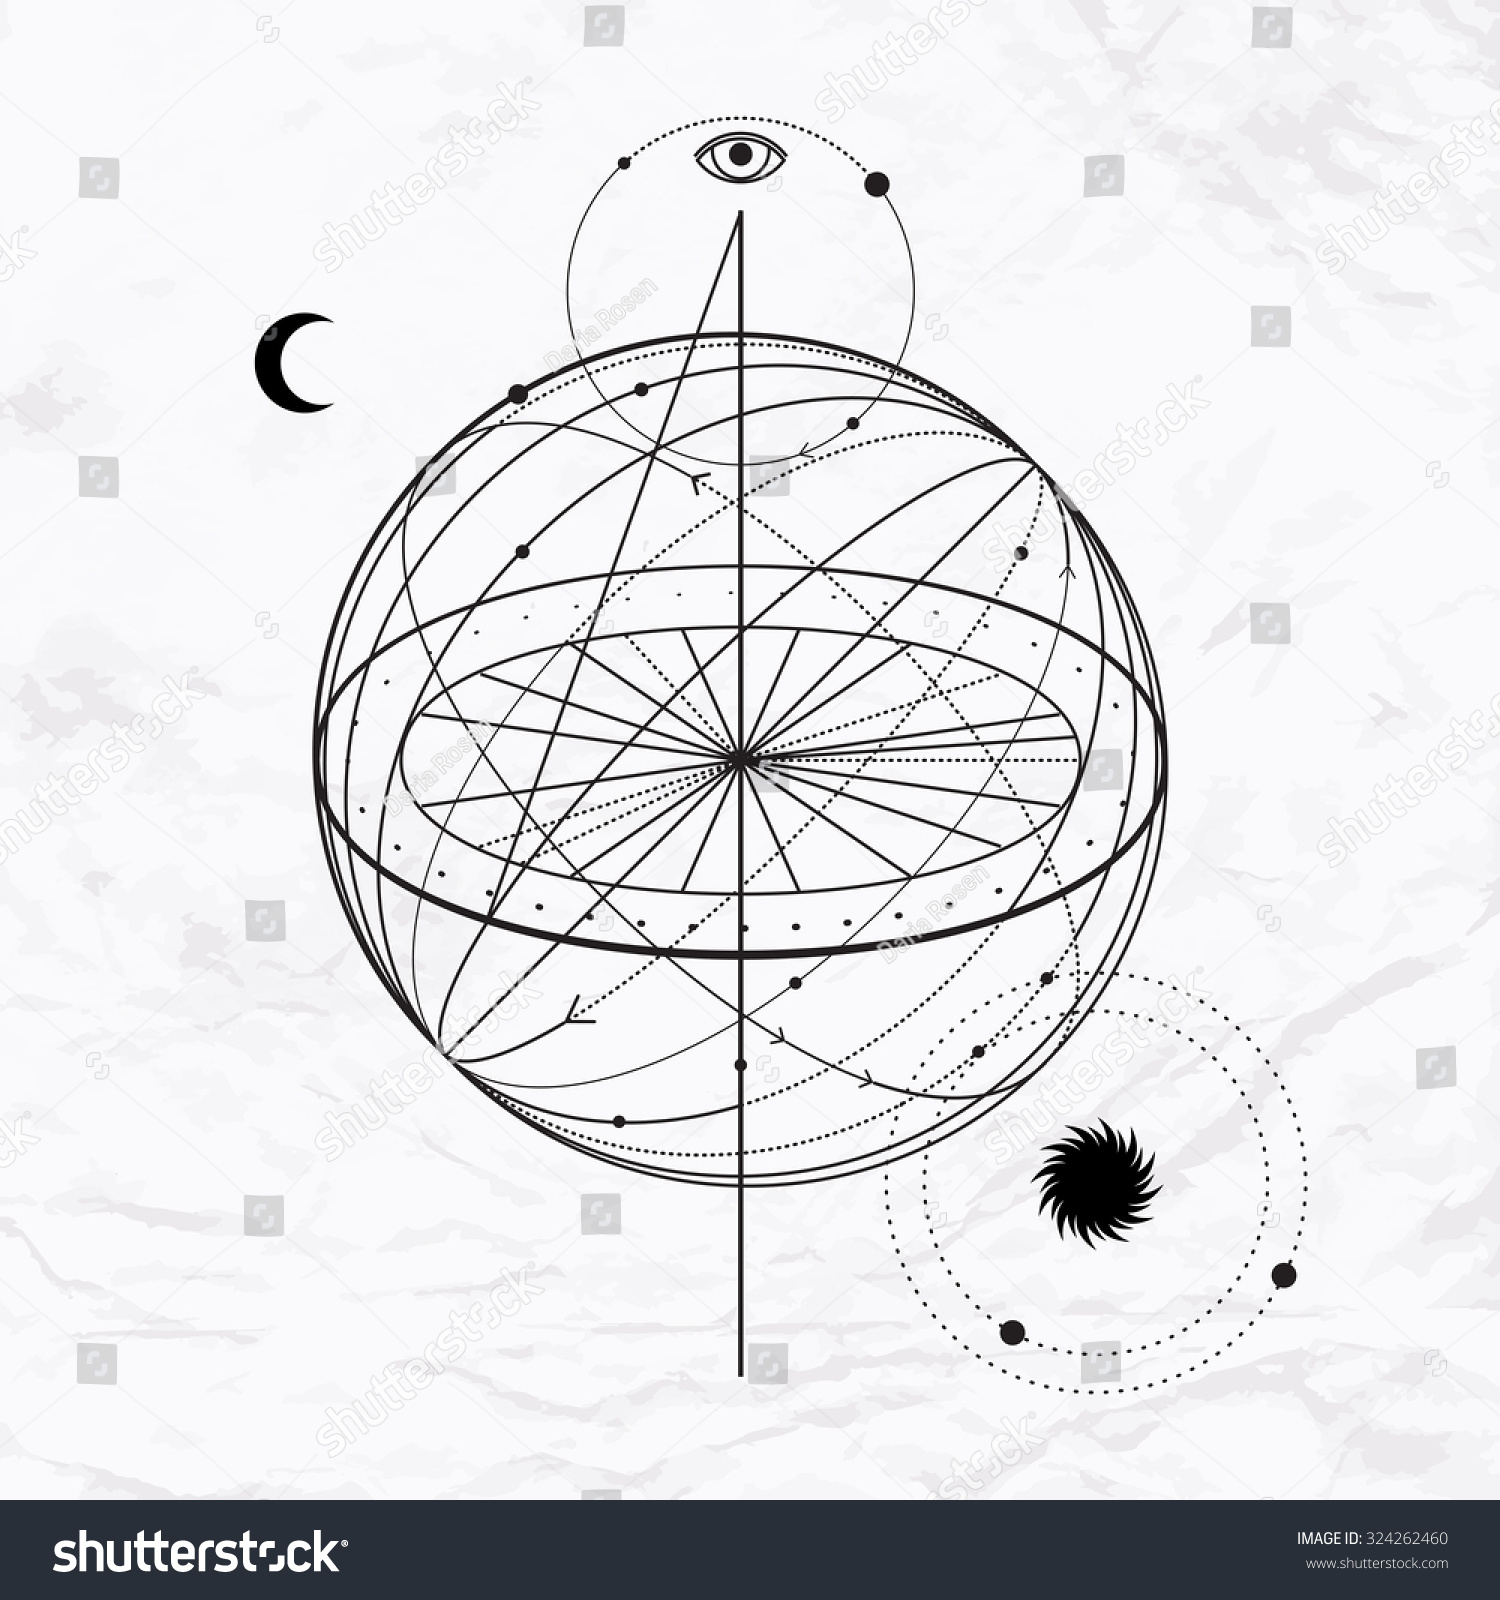 astrology and alchemy the occult Occult books 454 on dvd spells wicca witchcraft paganism astrology alchemy email to friends share on facebook - opens in a new window or tab share on twitter - opens in a new window or tab share on pinterest - opens in a new window or tab.